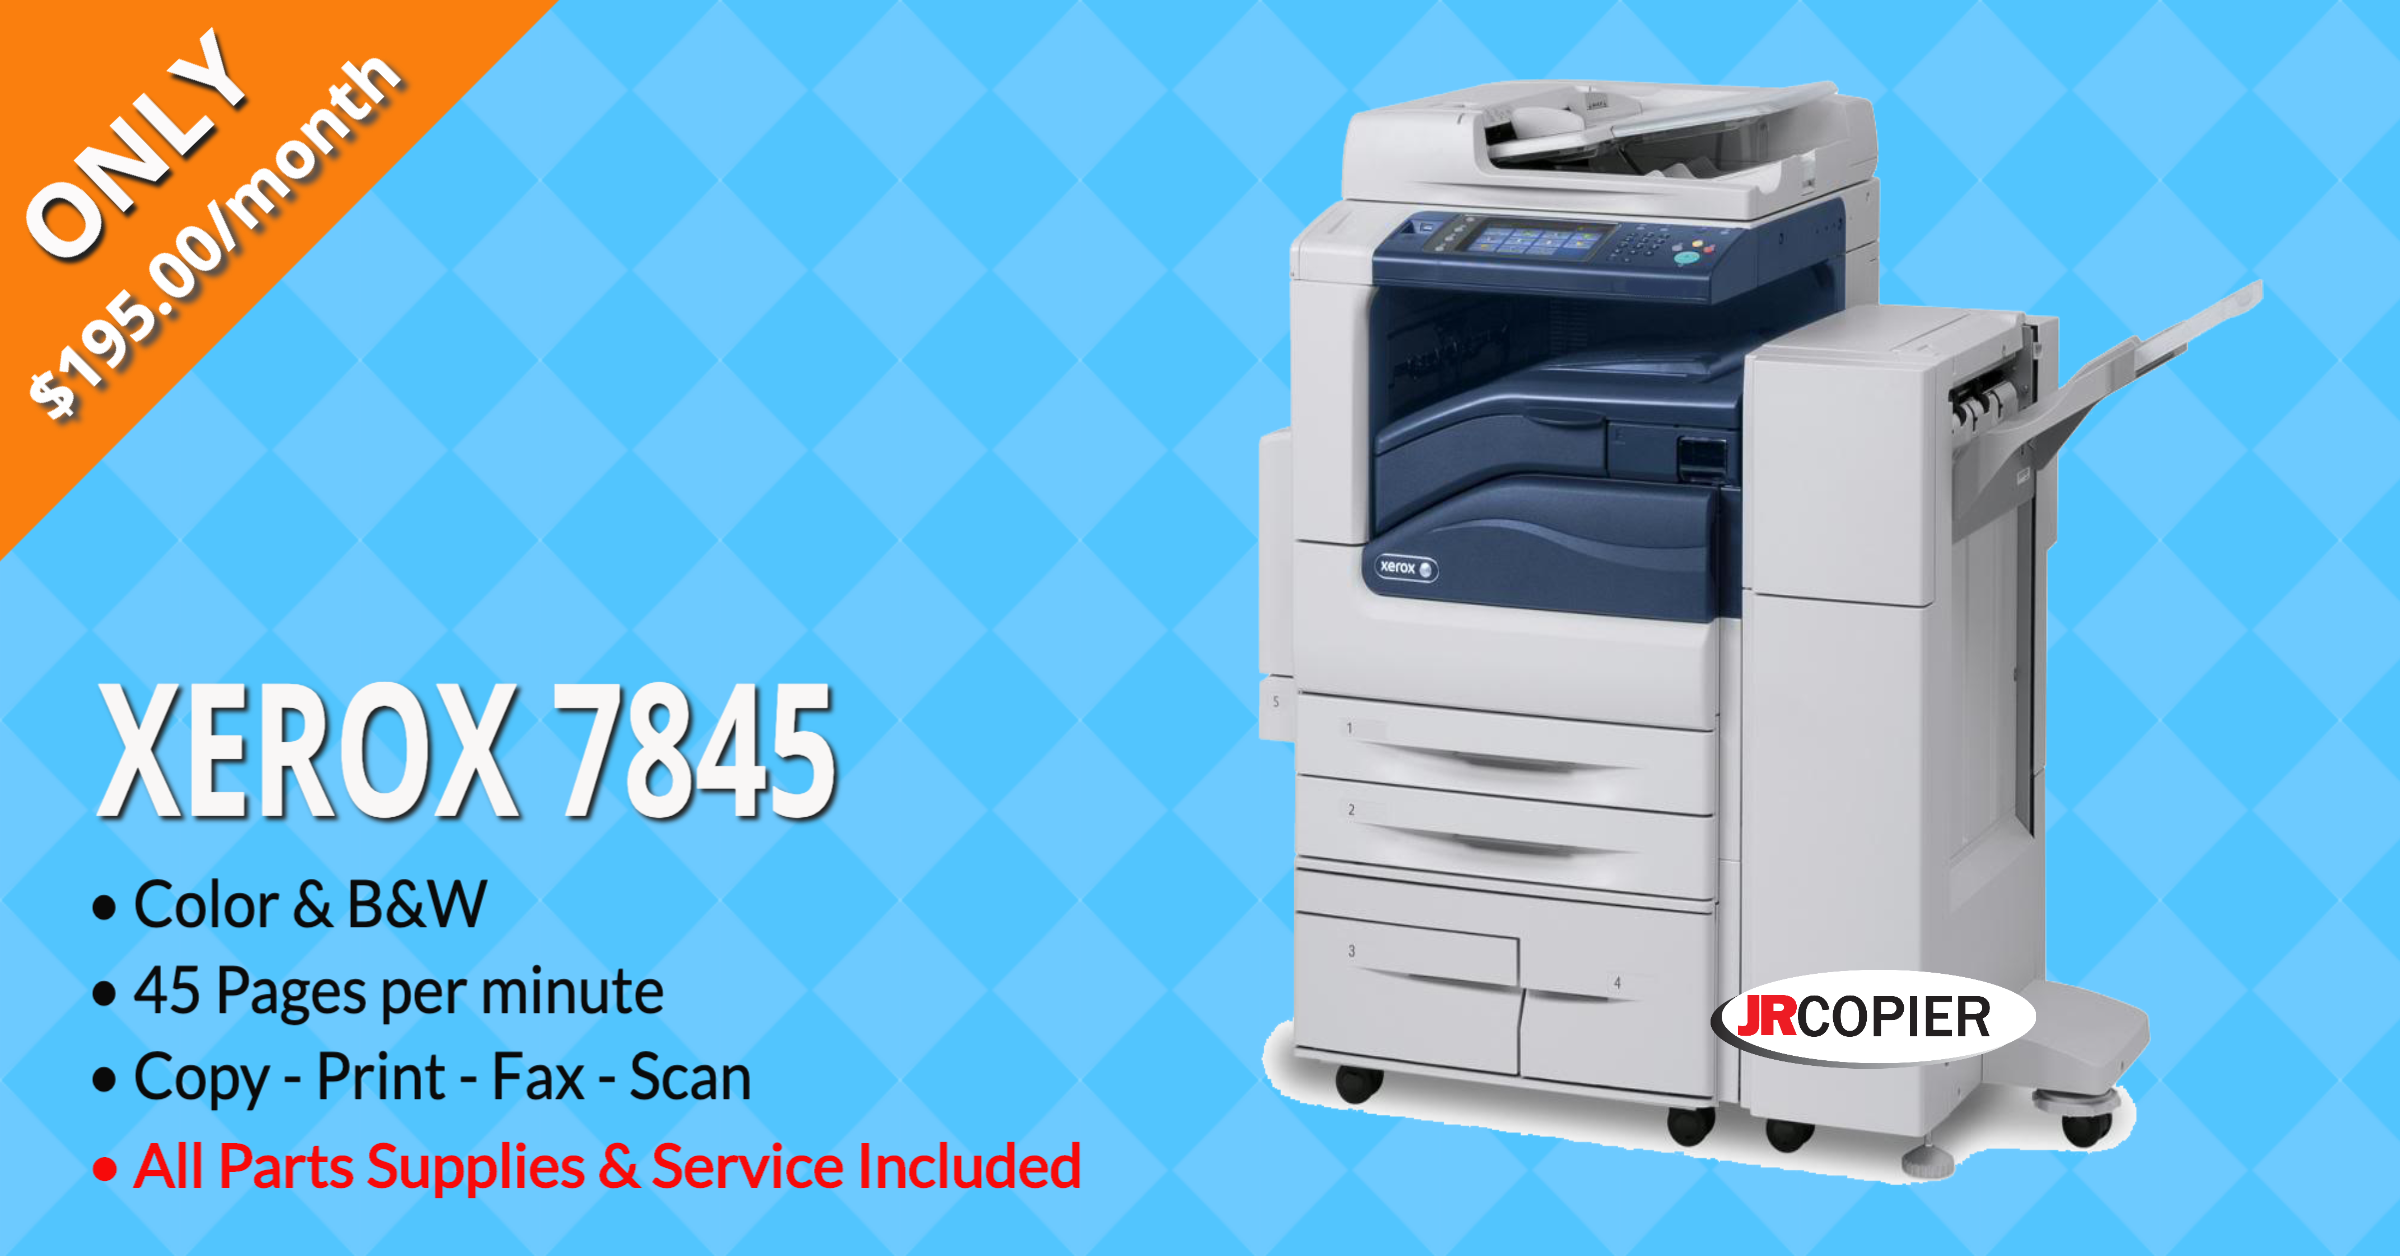 Copy Machine Companies 80104, 80108, 80109, 80134